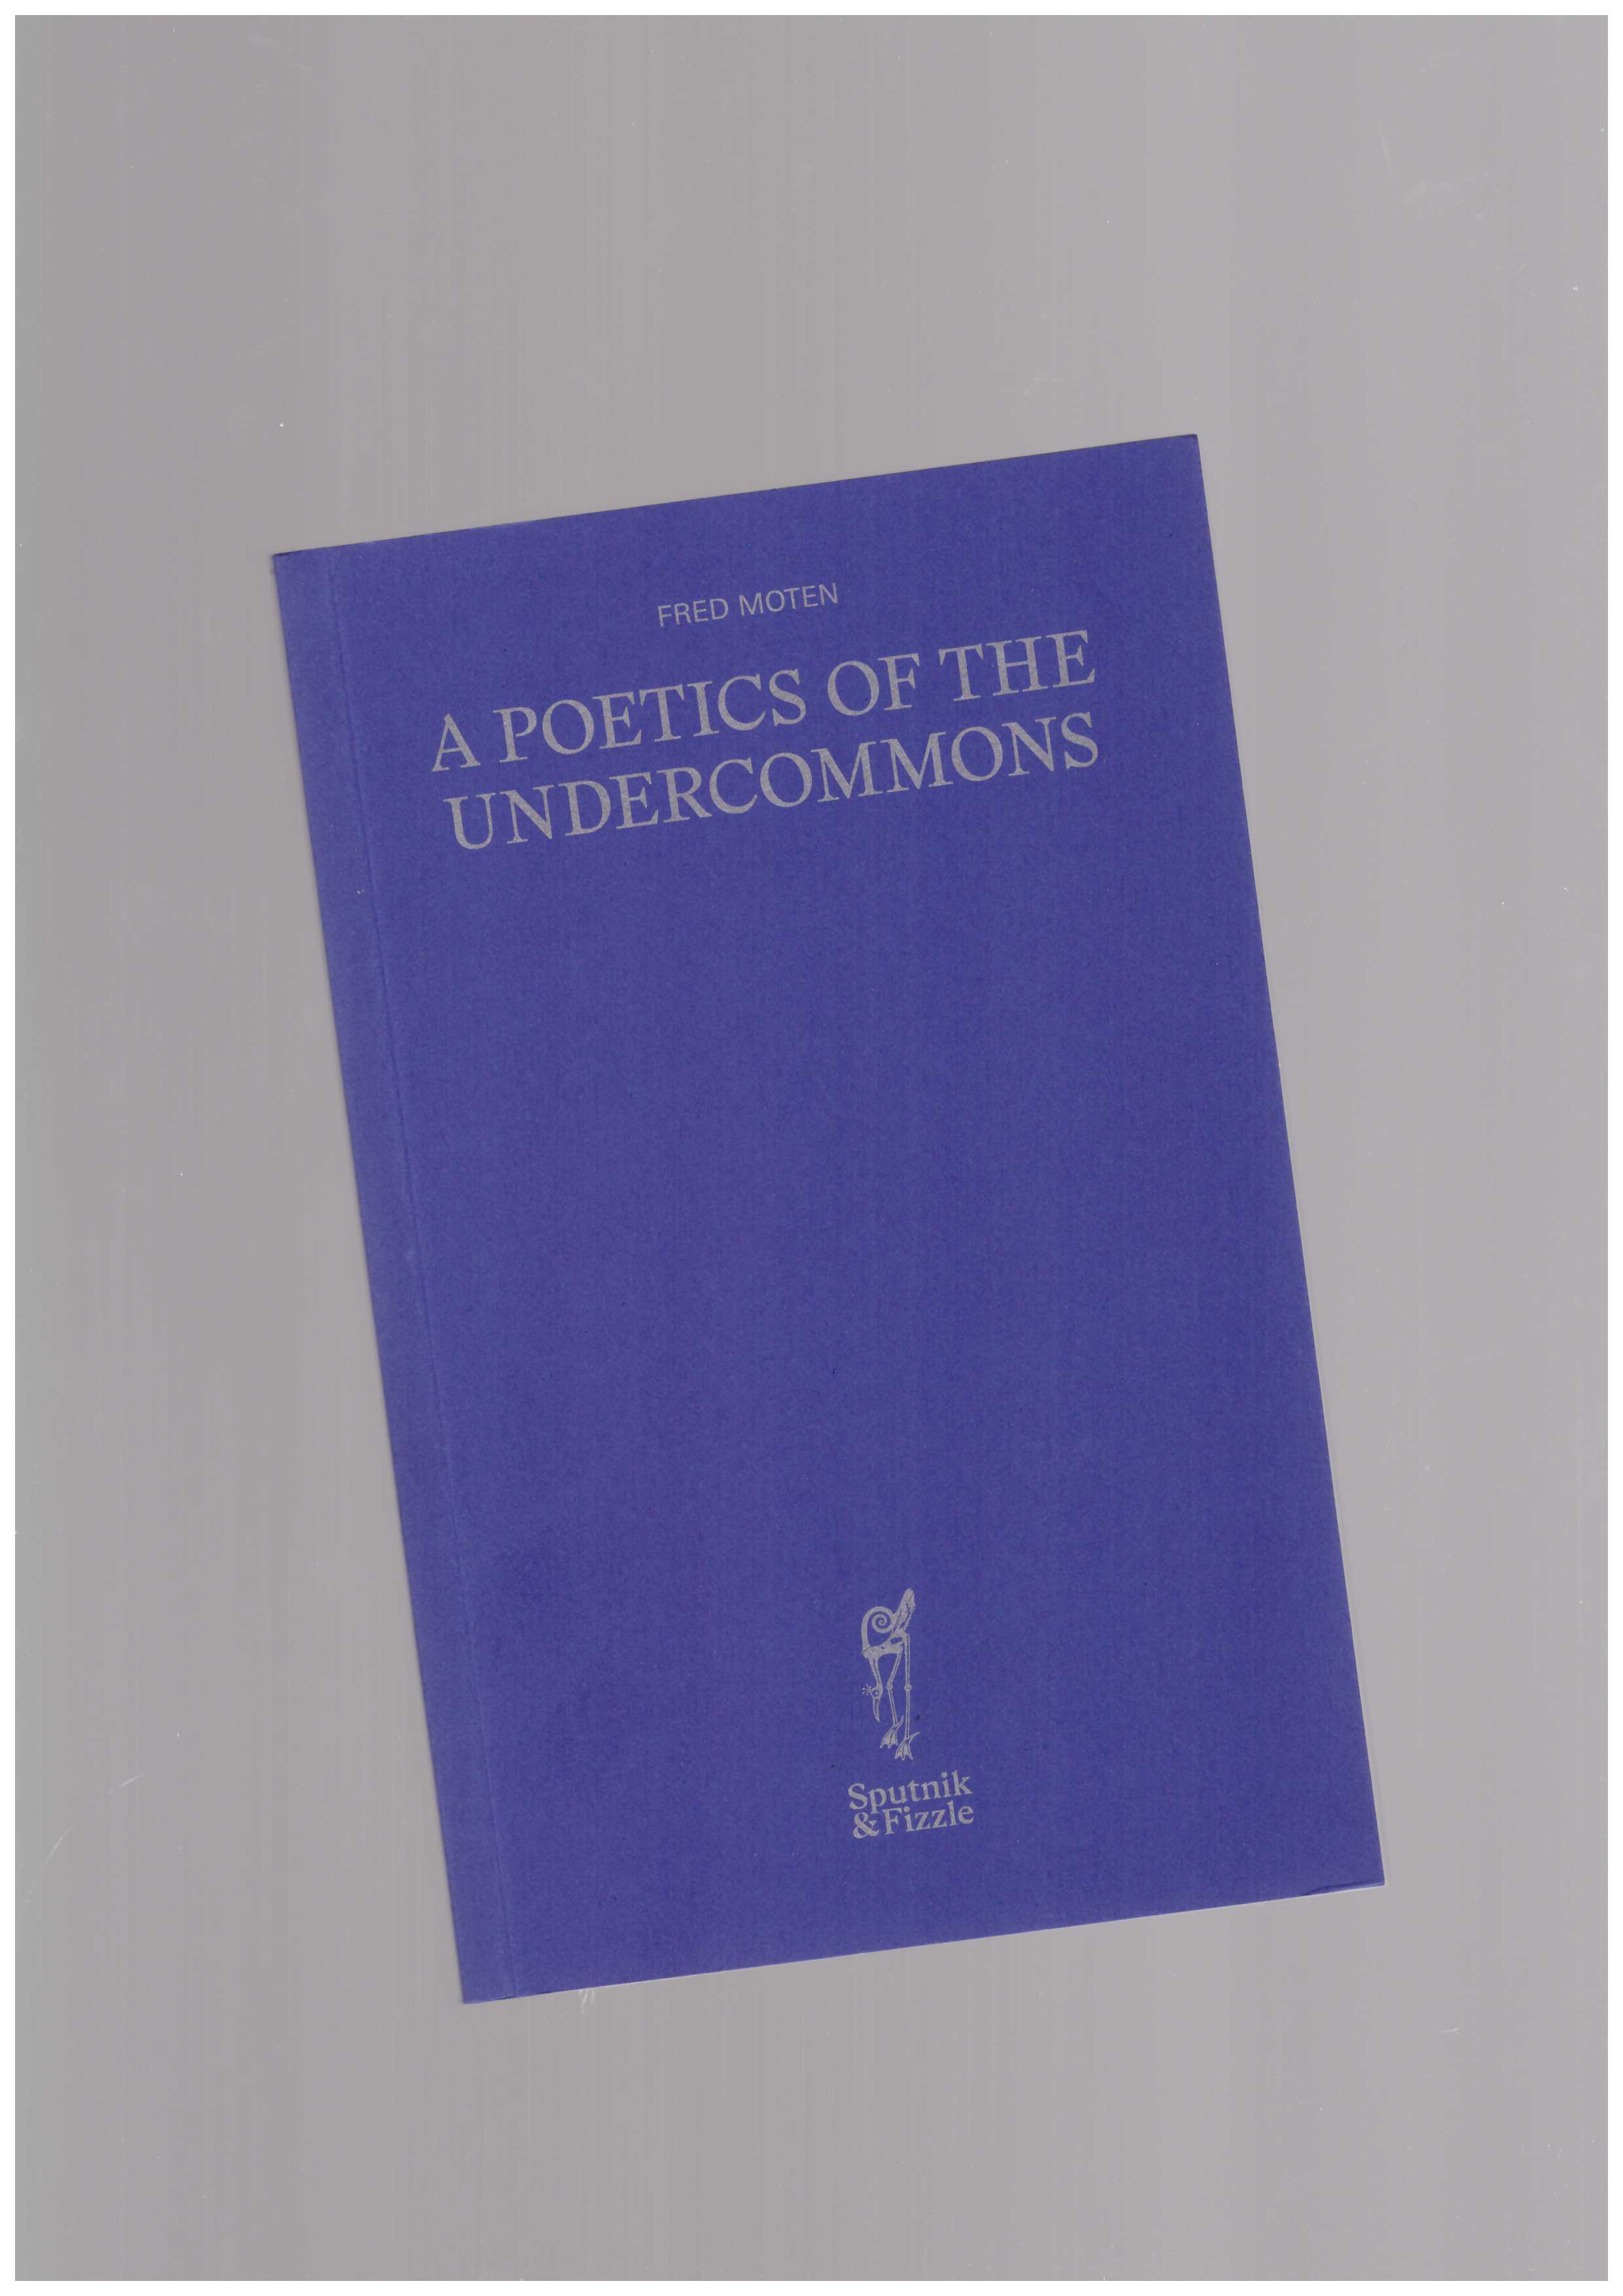 MOTEN, Fred - A Poetics of the Undercommons